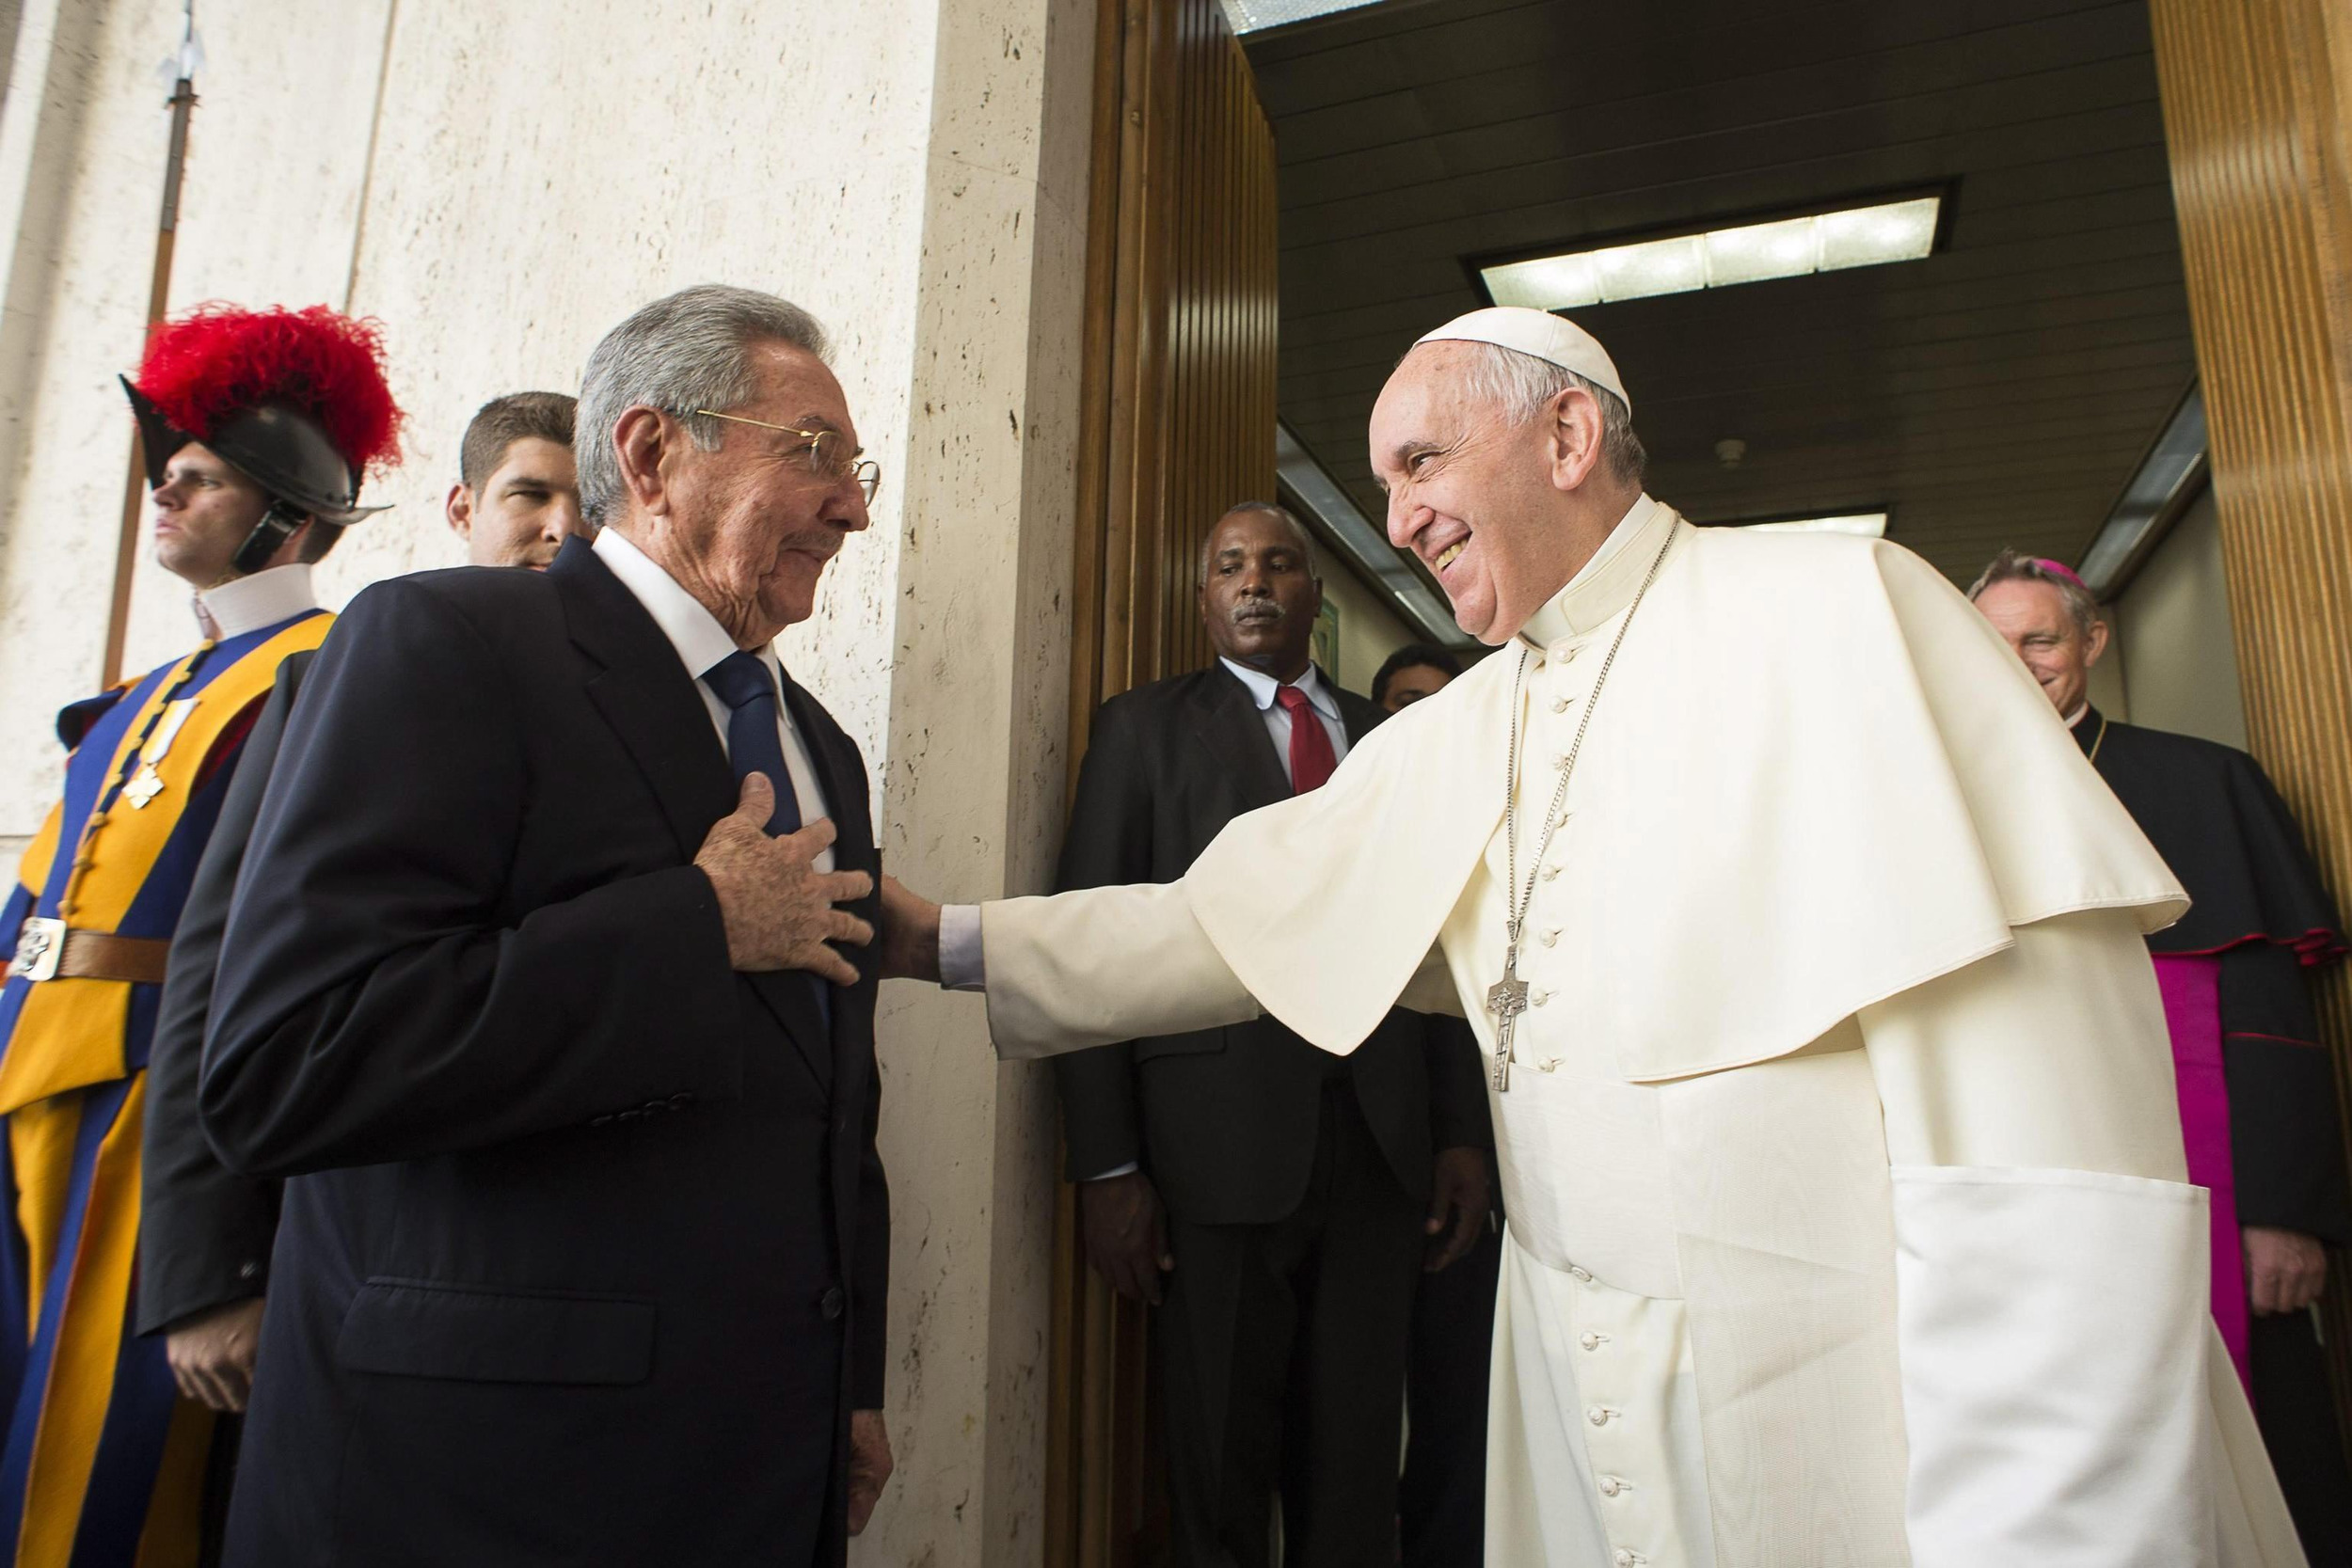 Image: Pope Francis meets Cuban President Raul Castro at the Vatican